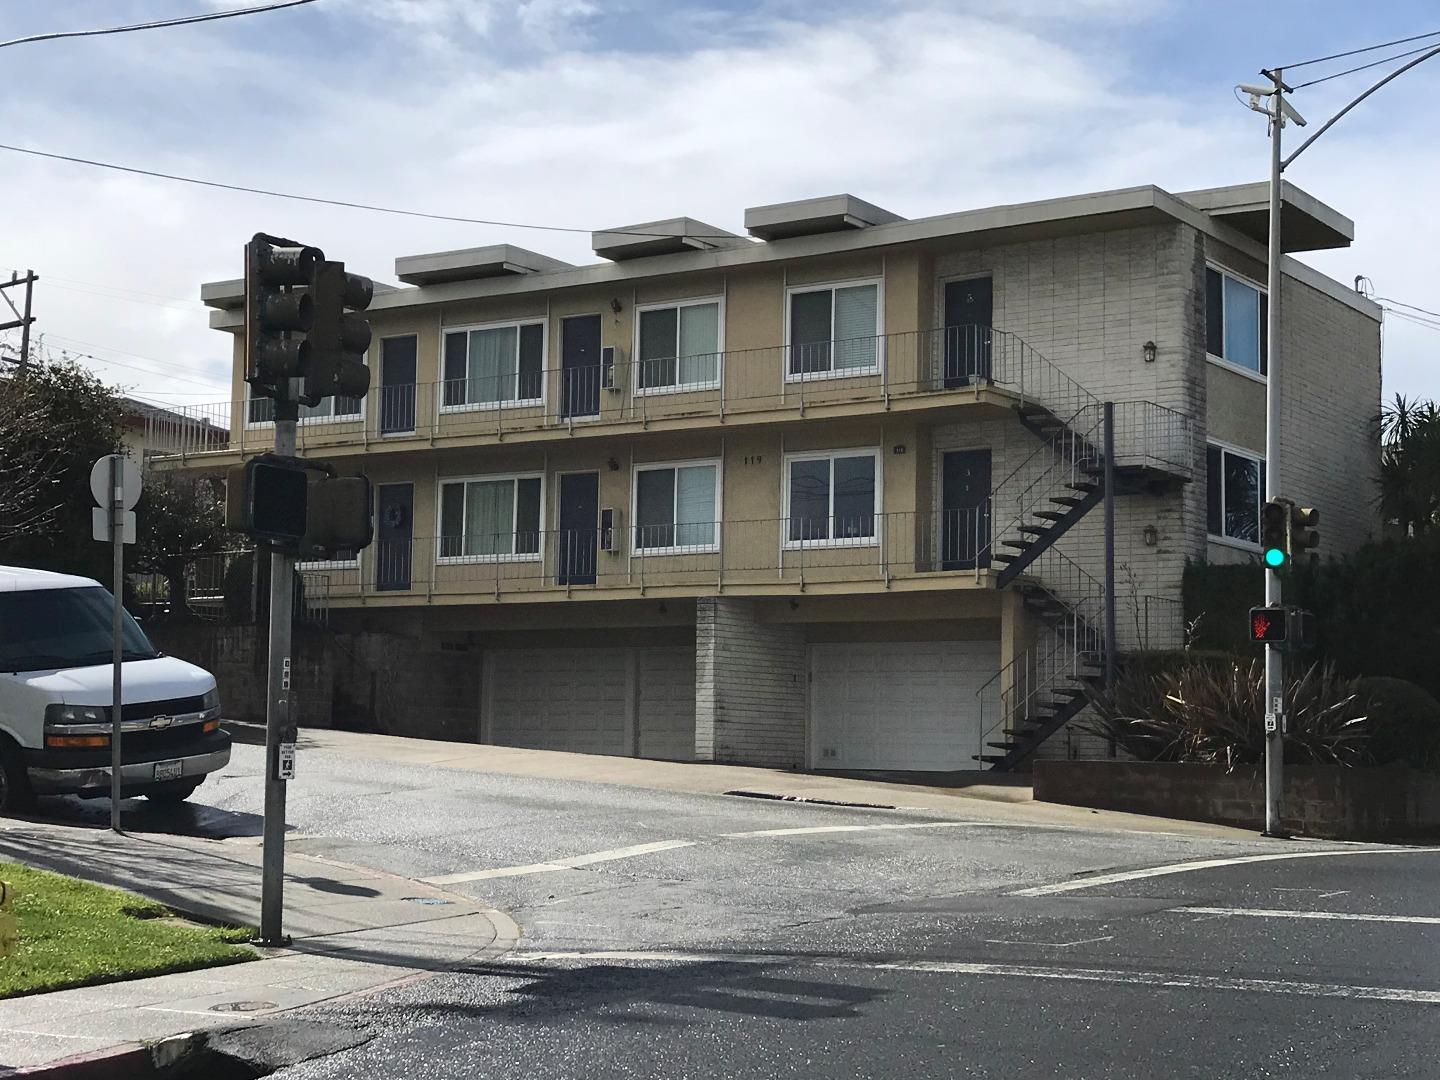 Casa Multifamiliar por un Venta en 119 Maple Avenue 119 Maple Avenue South San Francisco, California 94080 Estados Unidos